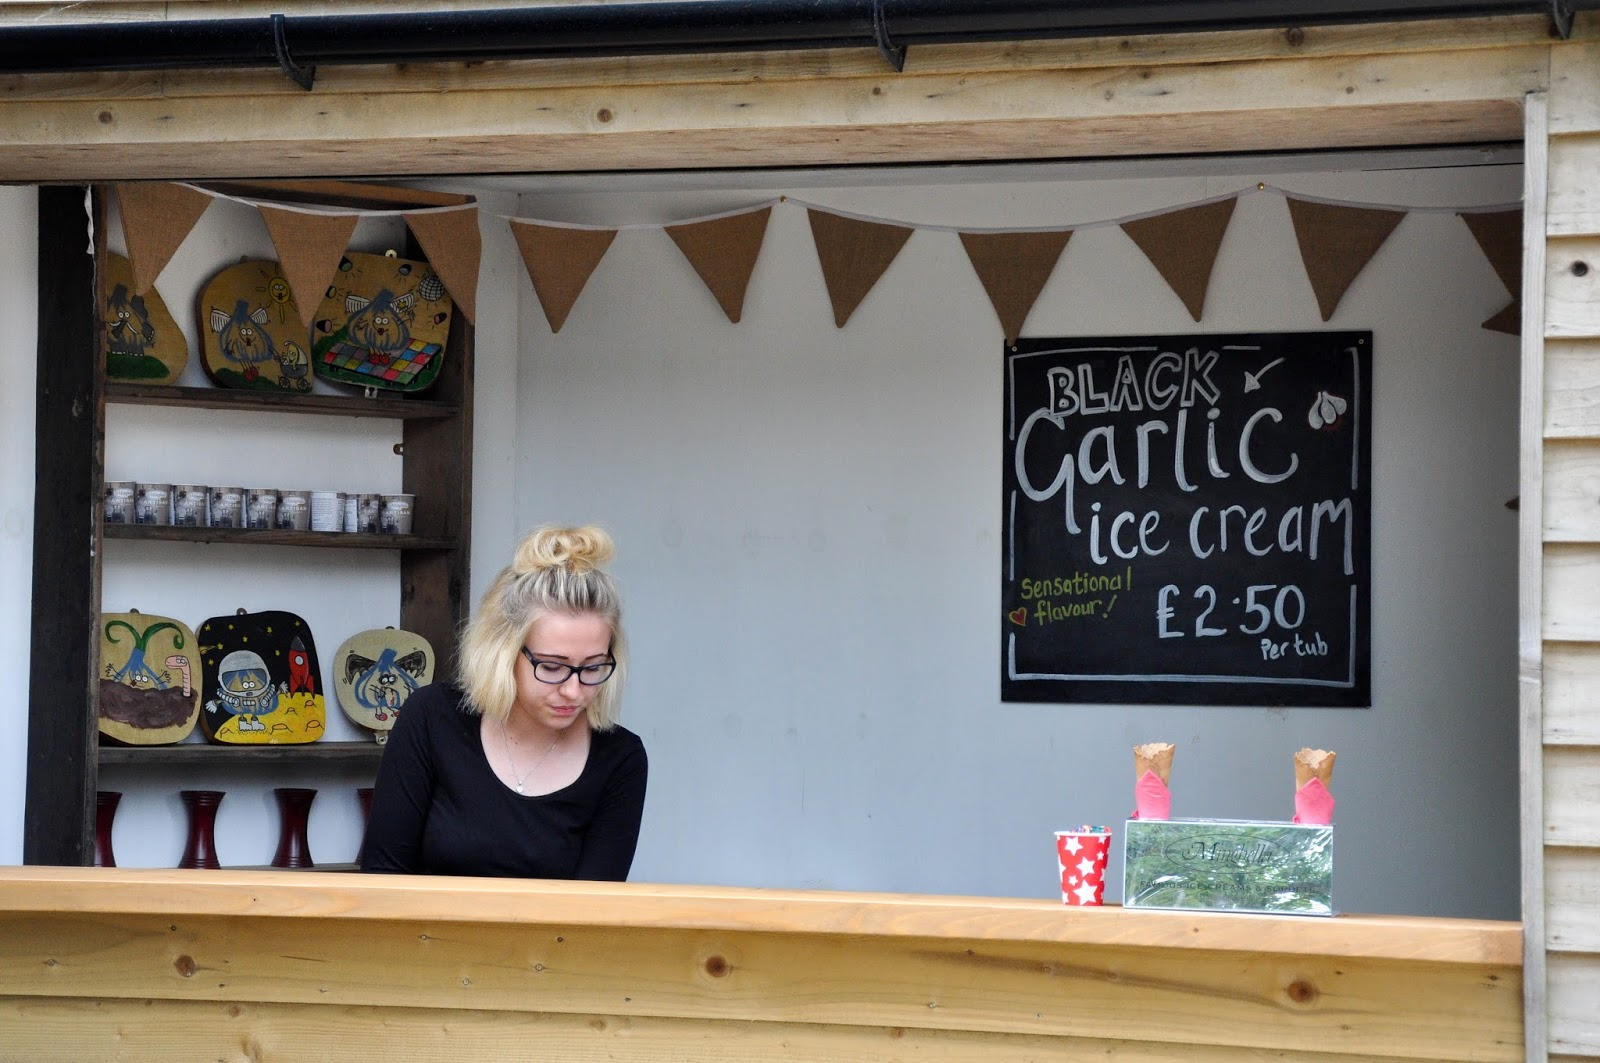 Black garlic ice cream, The Garlic Farm, Isle of Wight, UK